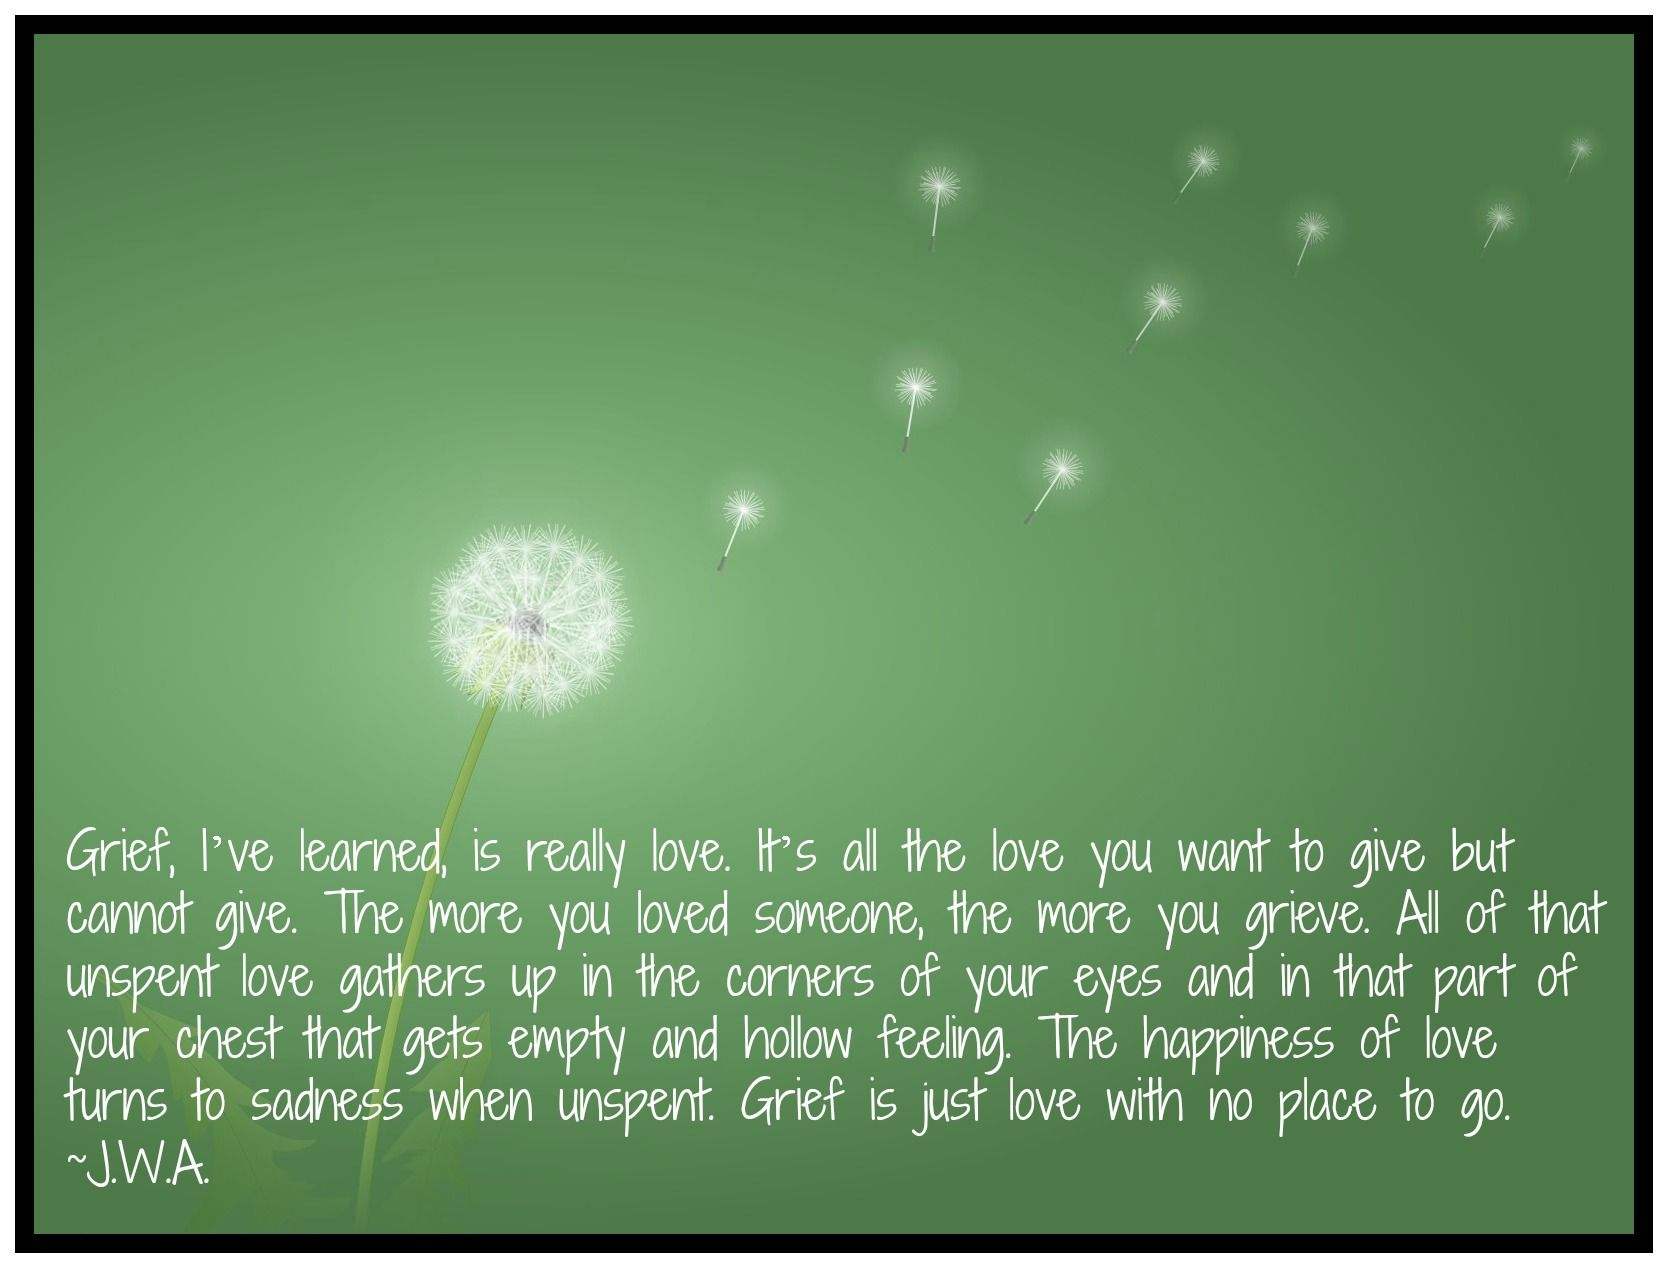 Thank You Quotes For Loss Of Loved One Goodbyeslife Quotelossdeathloss Of A Loved Onegrief